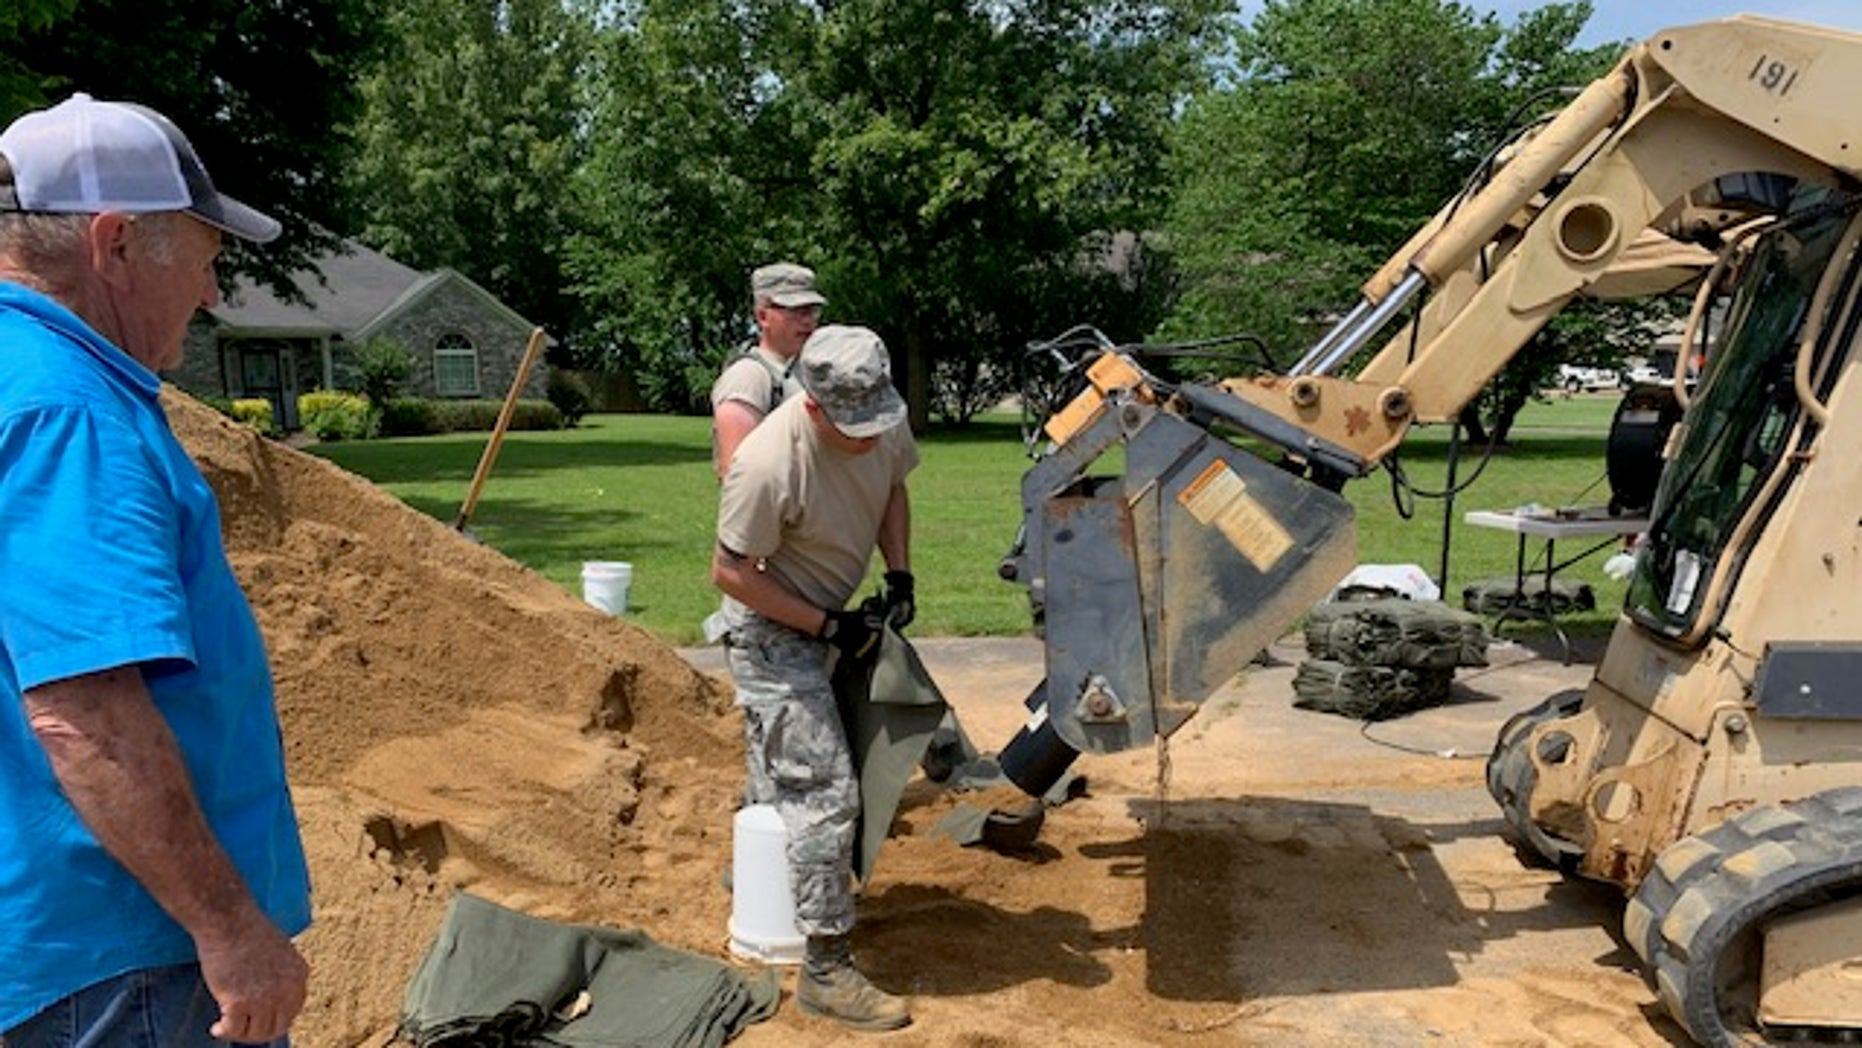 U.S. National Guard assisting the North Little Rock community in Arkansas with floods expected to continue this week,